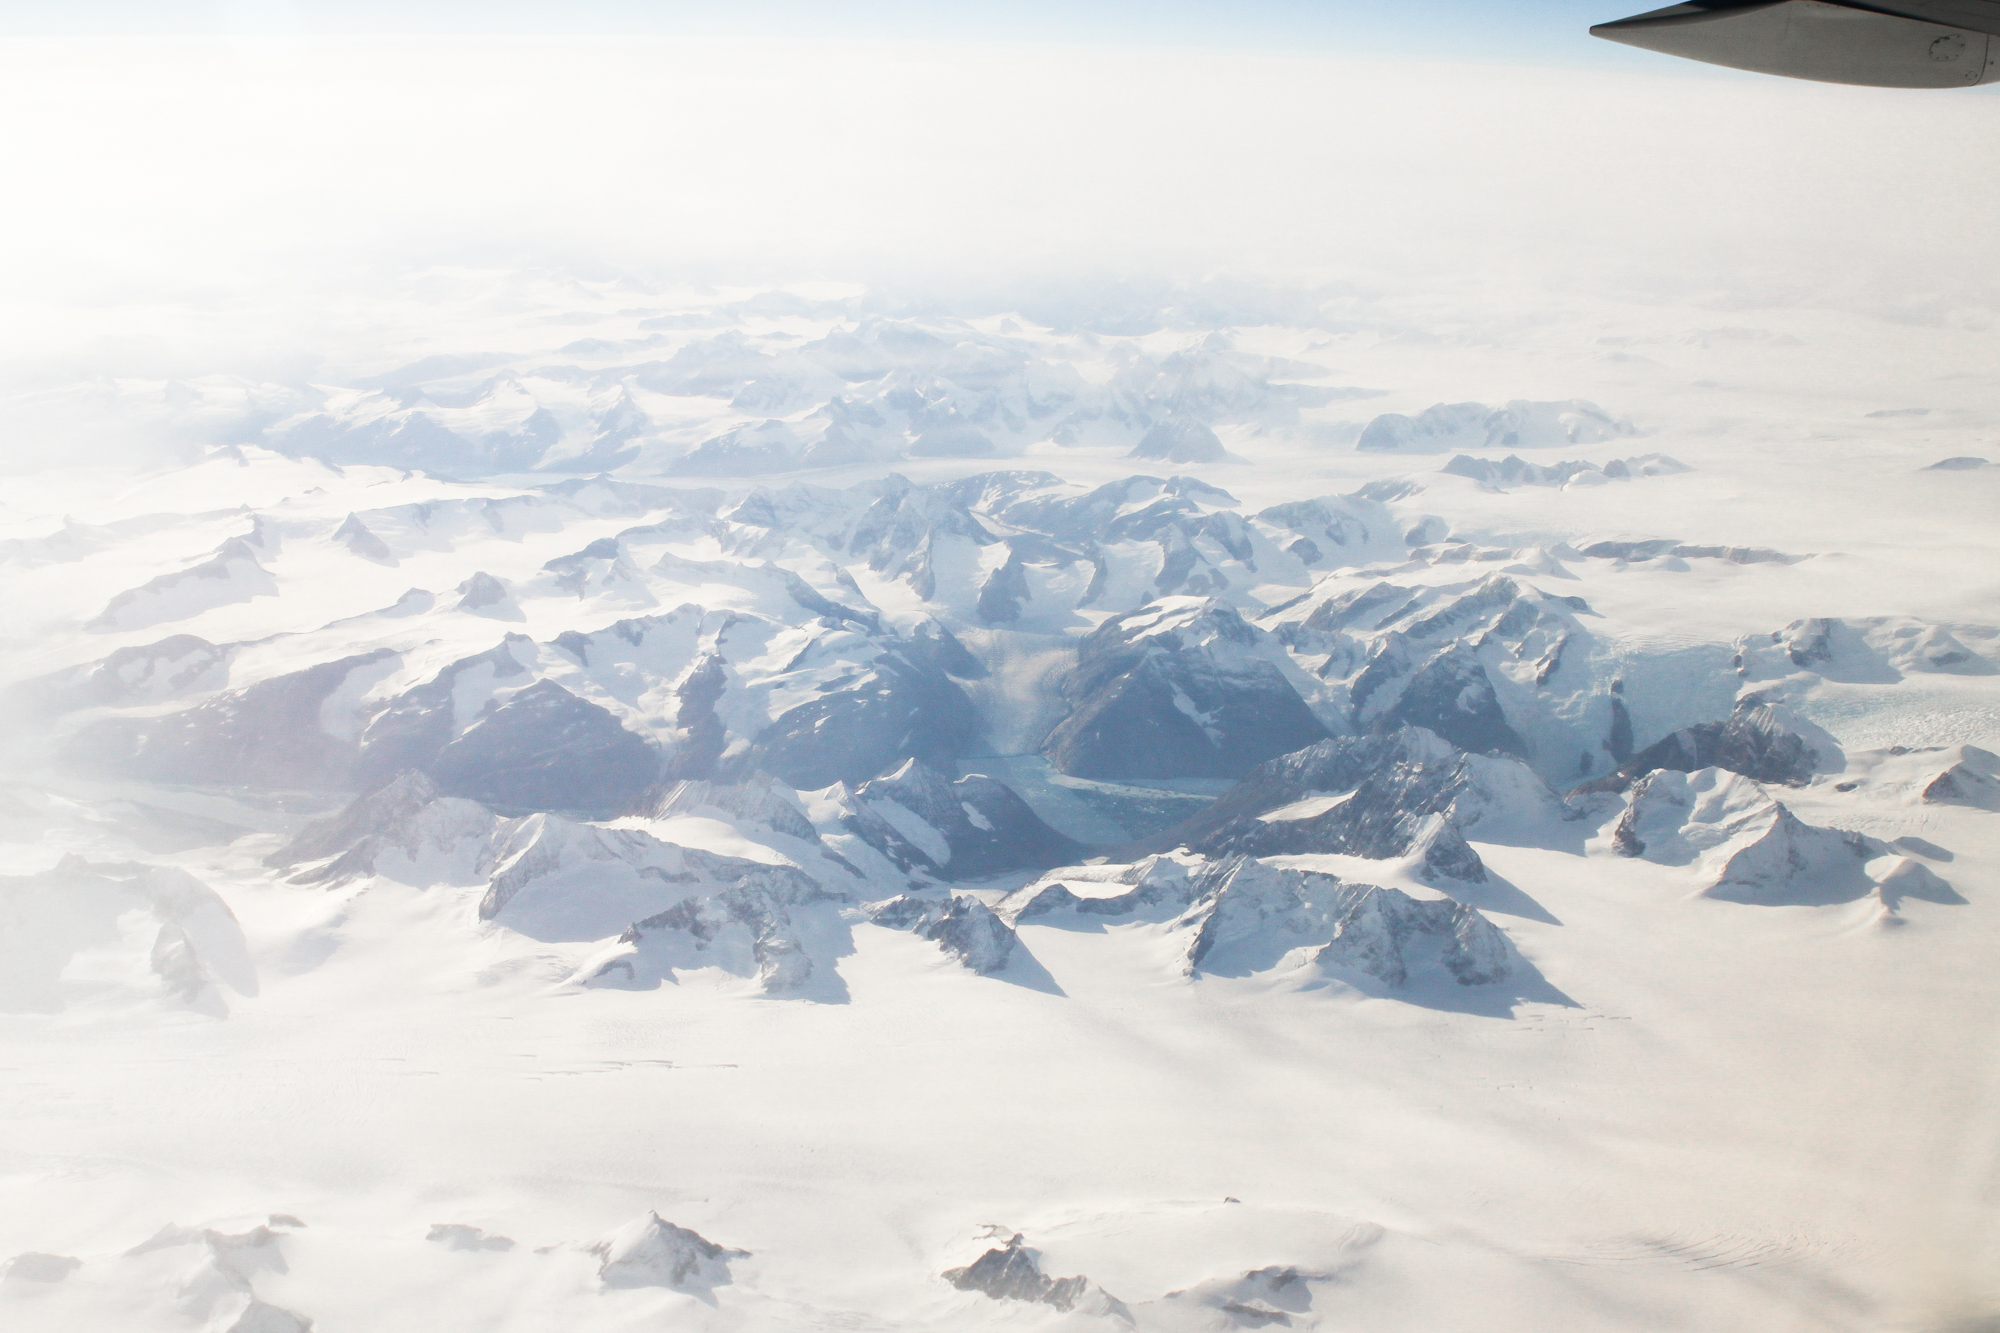 Can you spot the glacier melting? Global Warming much?!